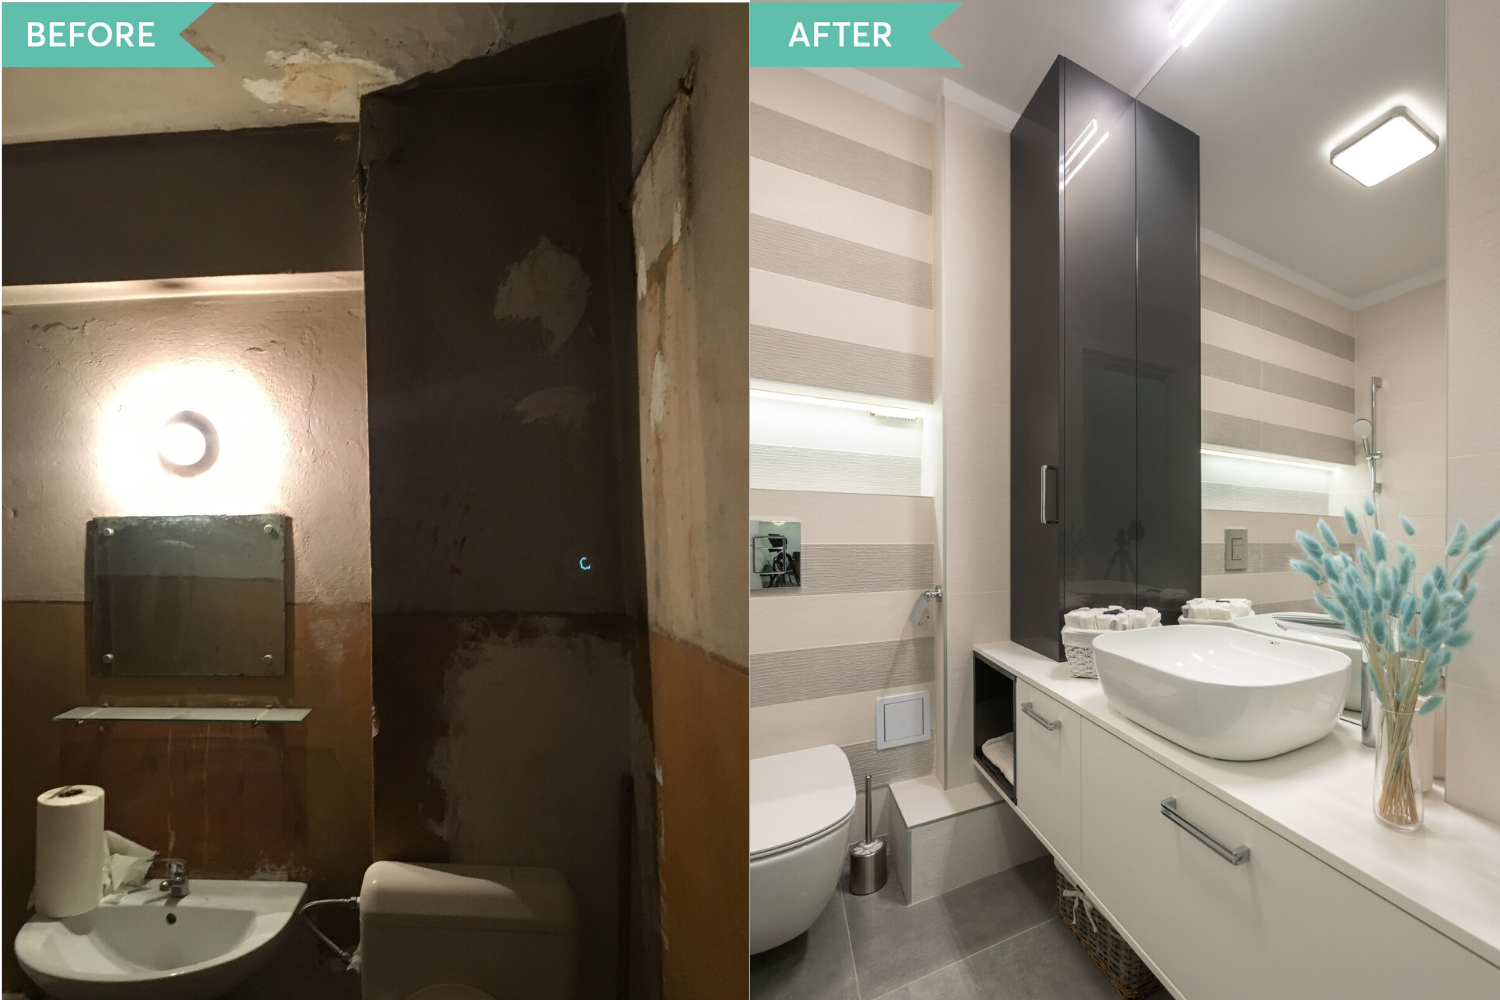 Renovare baie apartament vechi - before and after - arh. Cristiana Zgripcea